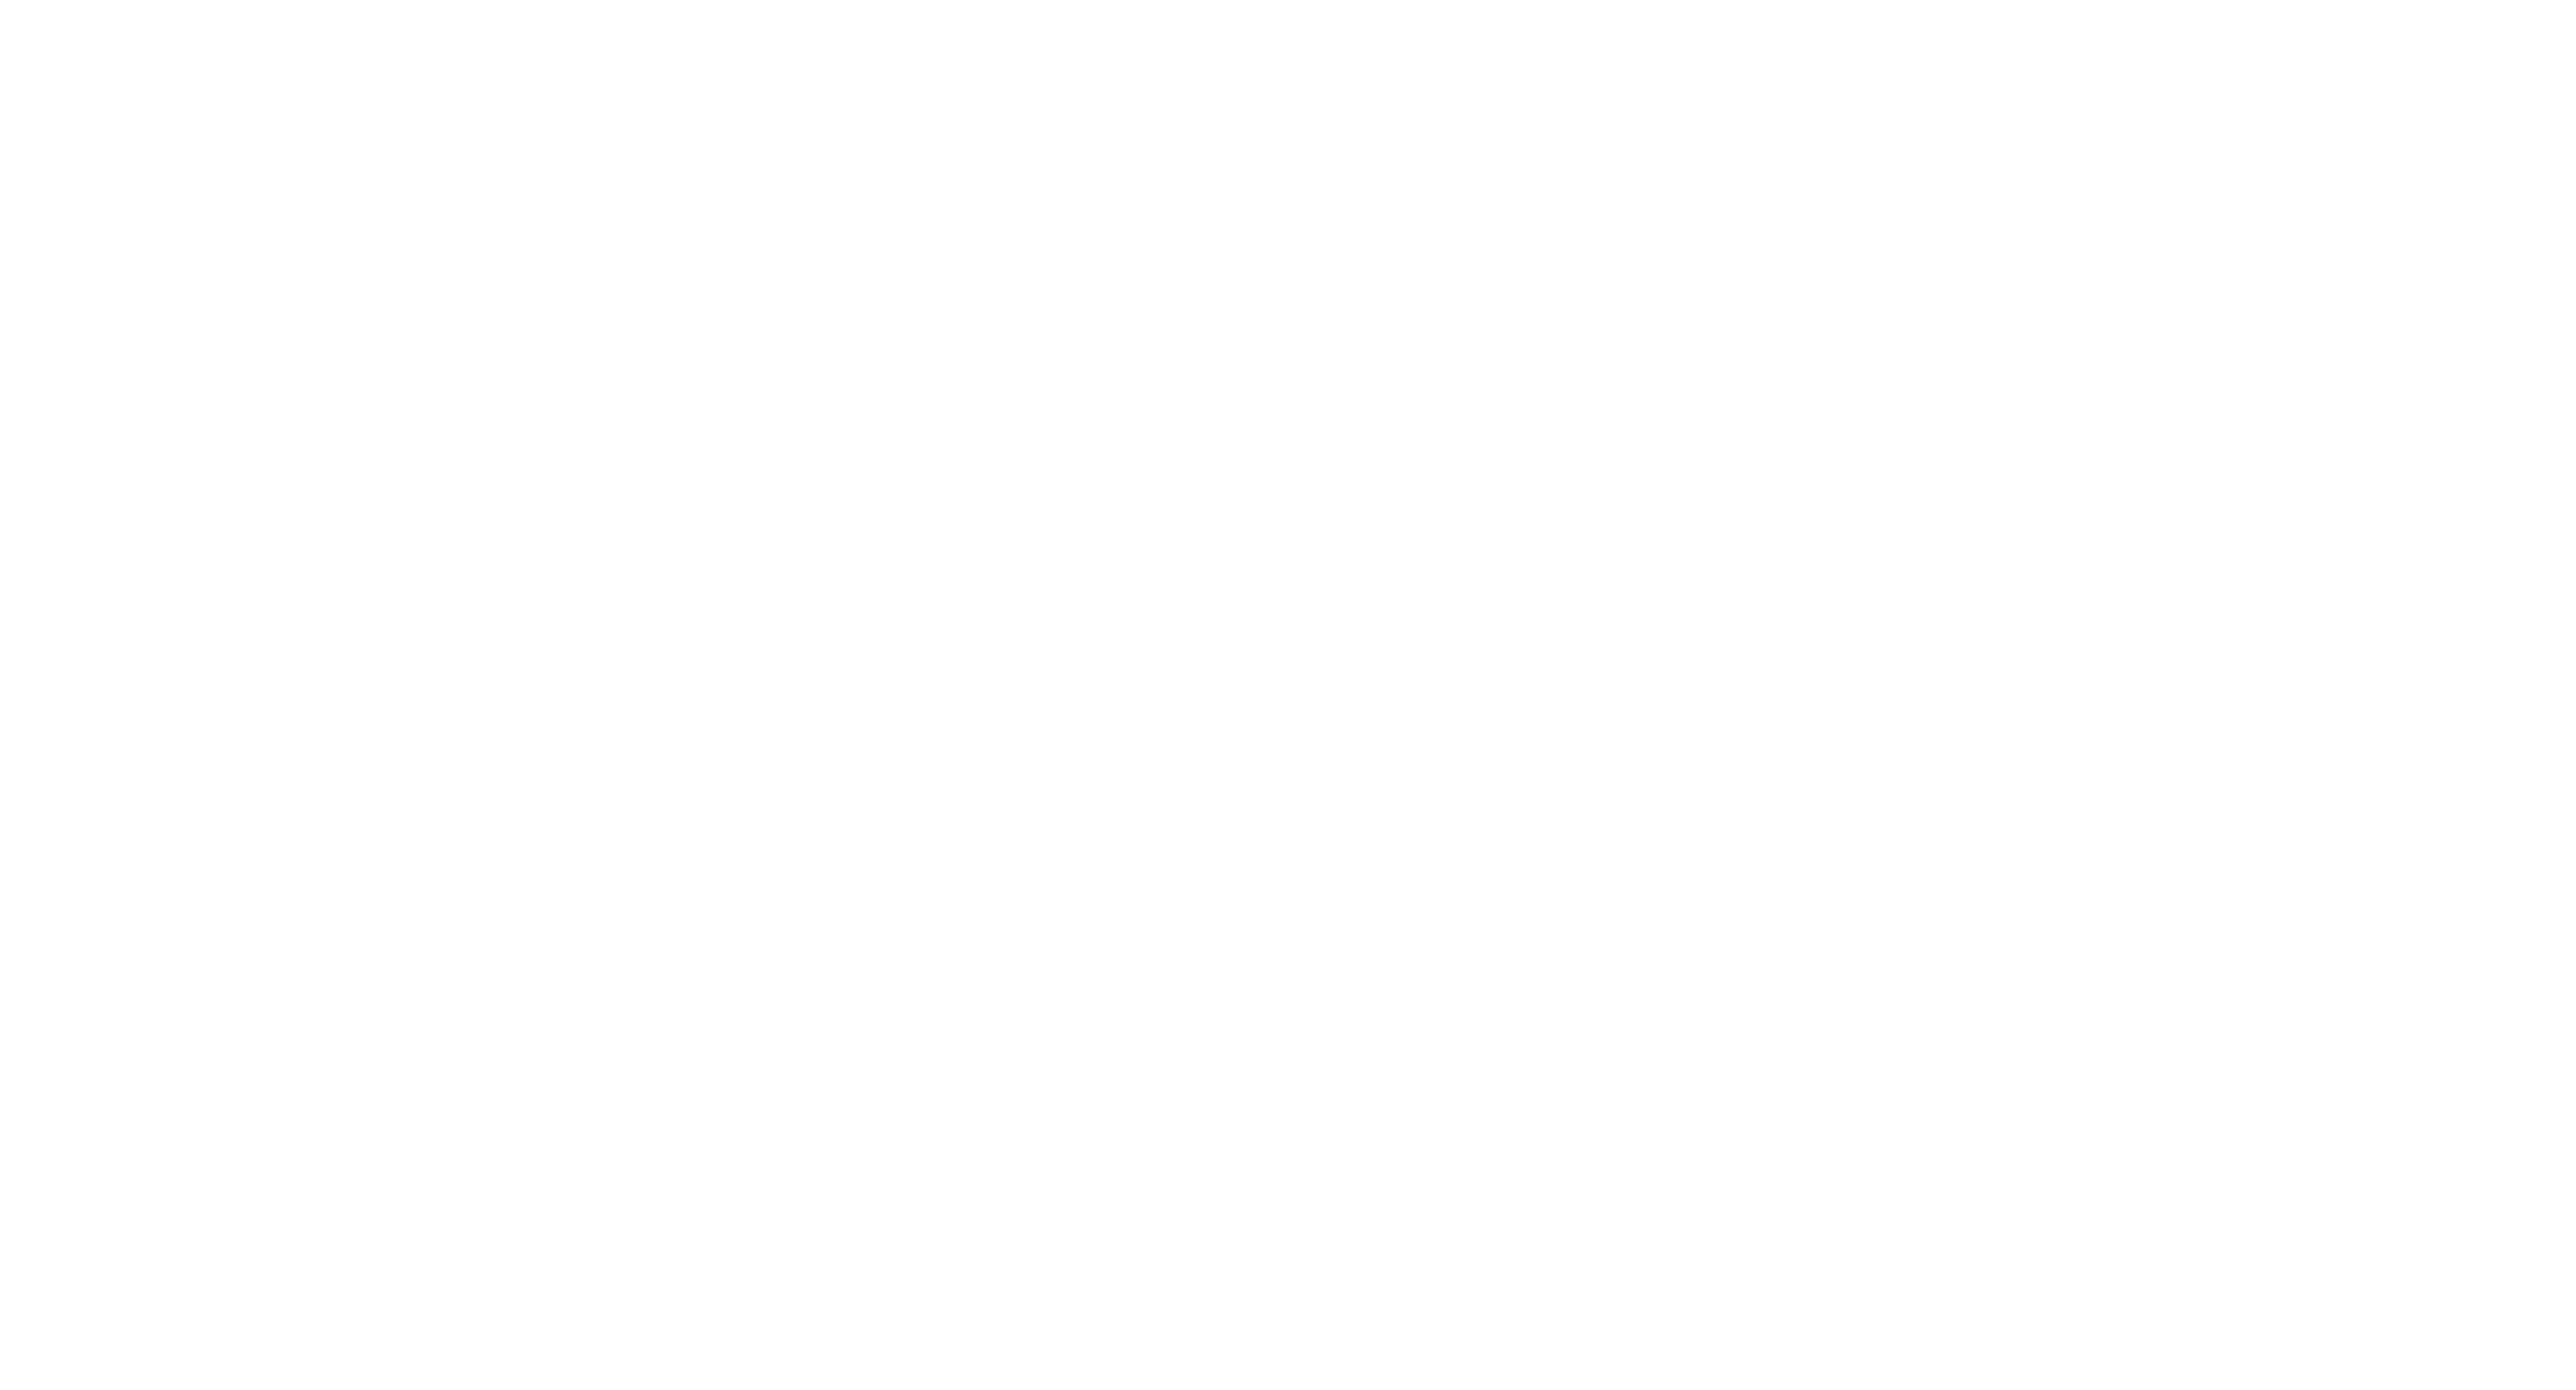 Oxford University Liberal Democrats